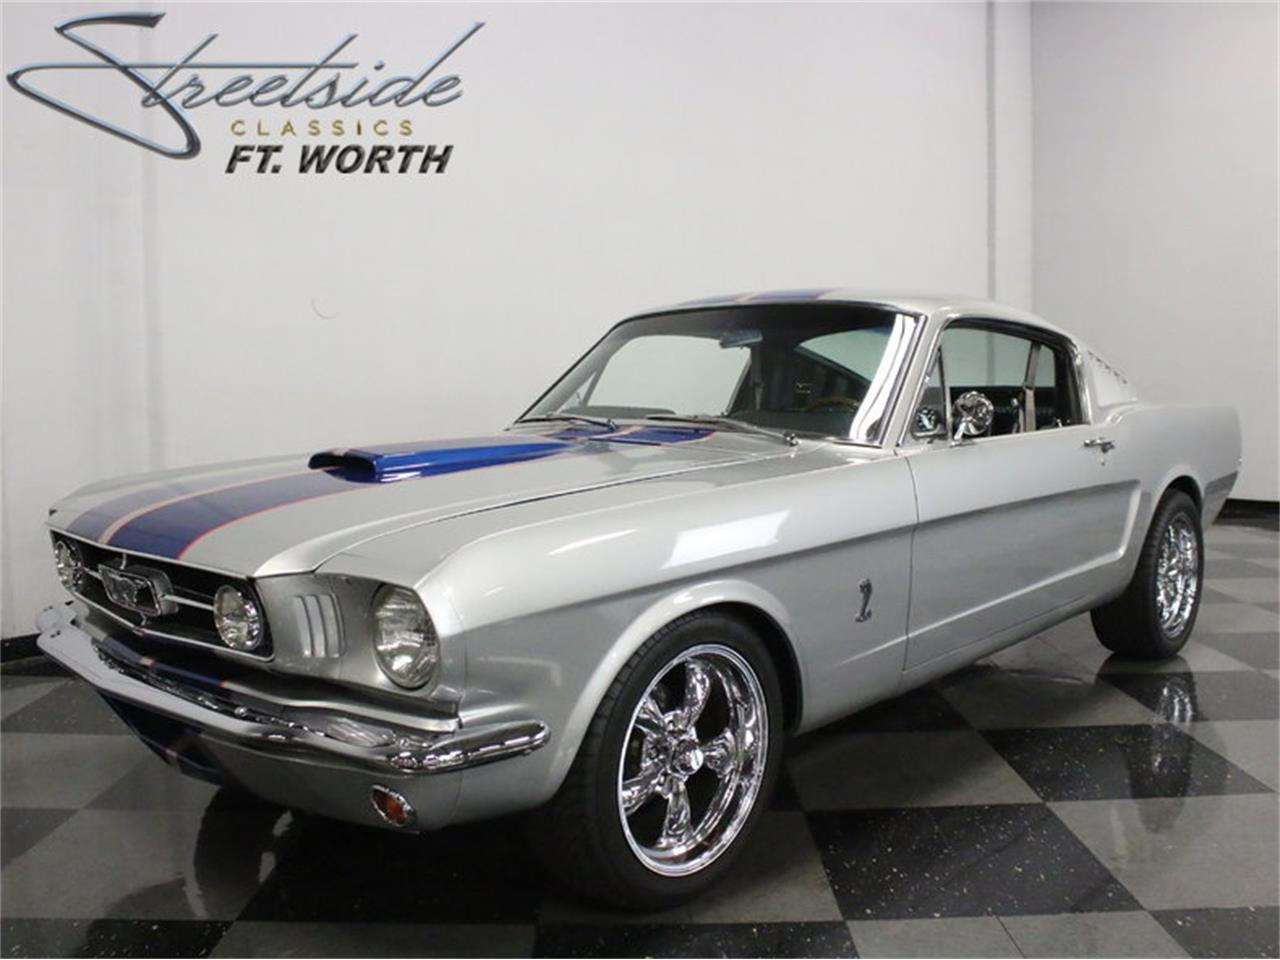 For sale 1965 ford mustang fastback restomod in ft worth texas